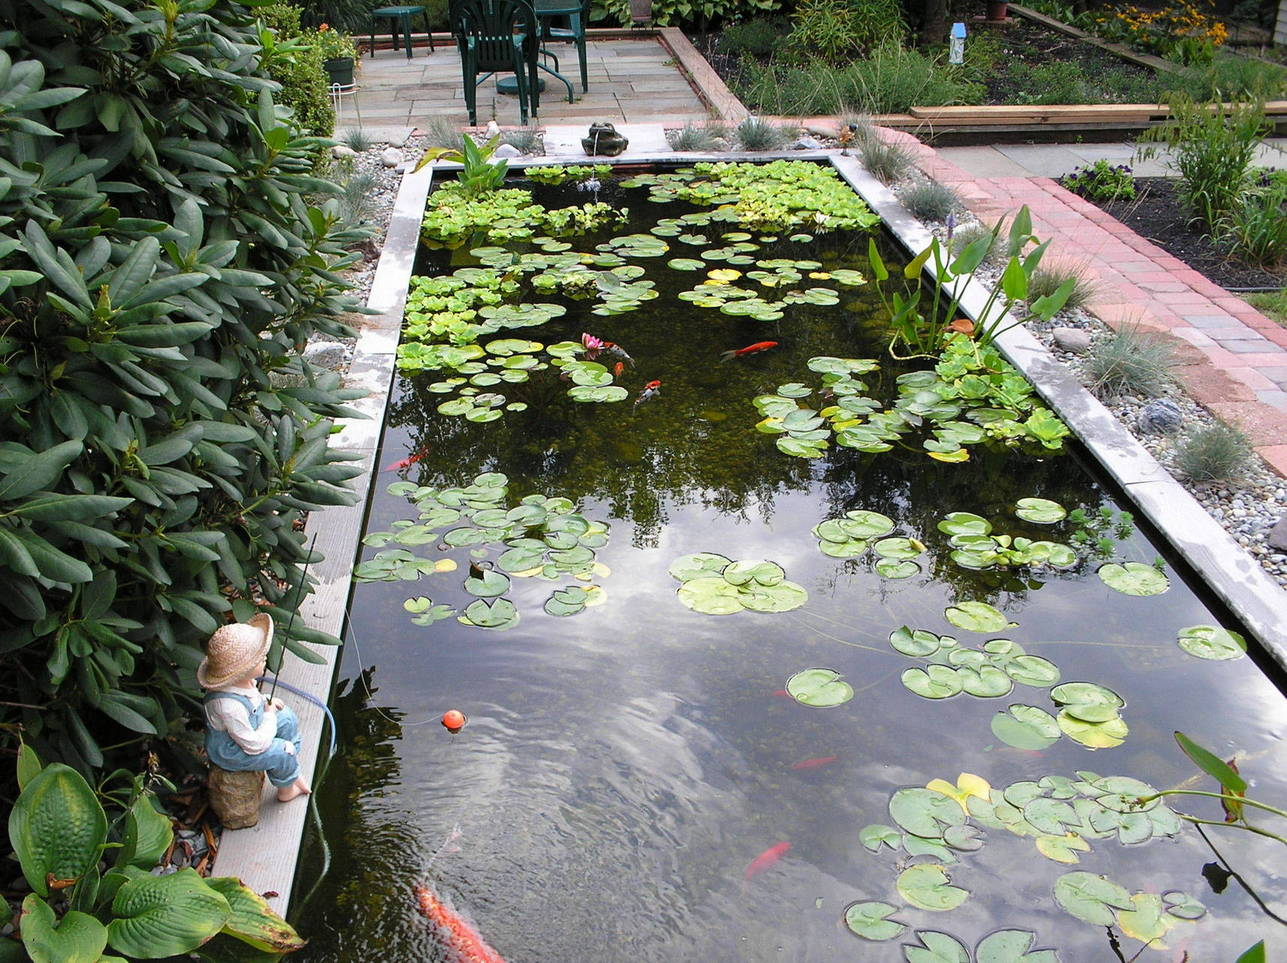 Oman landscape home landscaping designs your own t shirts for Koi pond design pictures